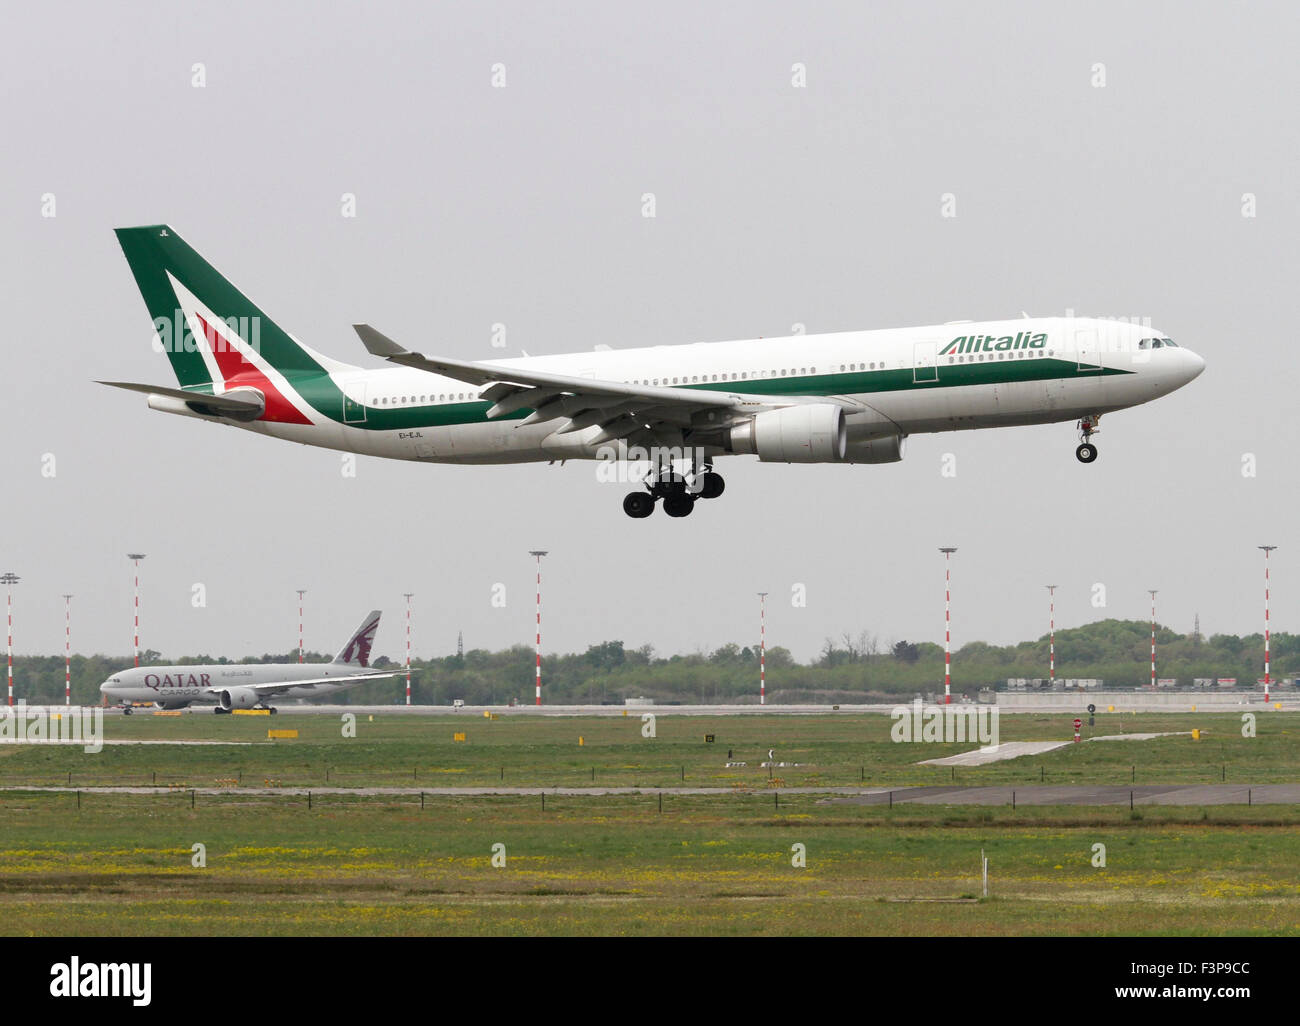 Alitalia, Airbus A330-202. Photographed at Linate airport, Milan, Italy - Stock Image